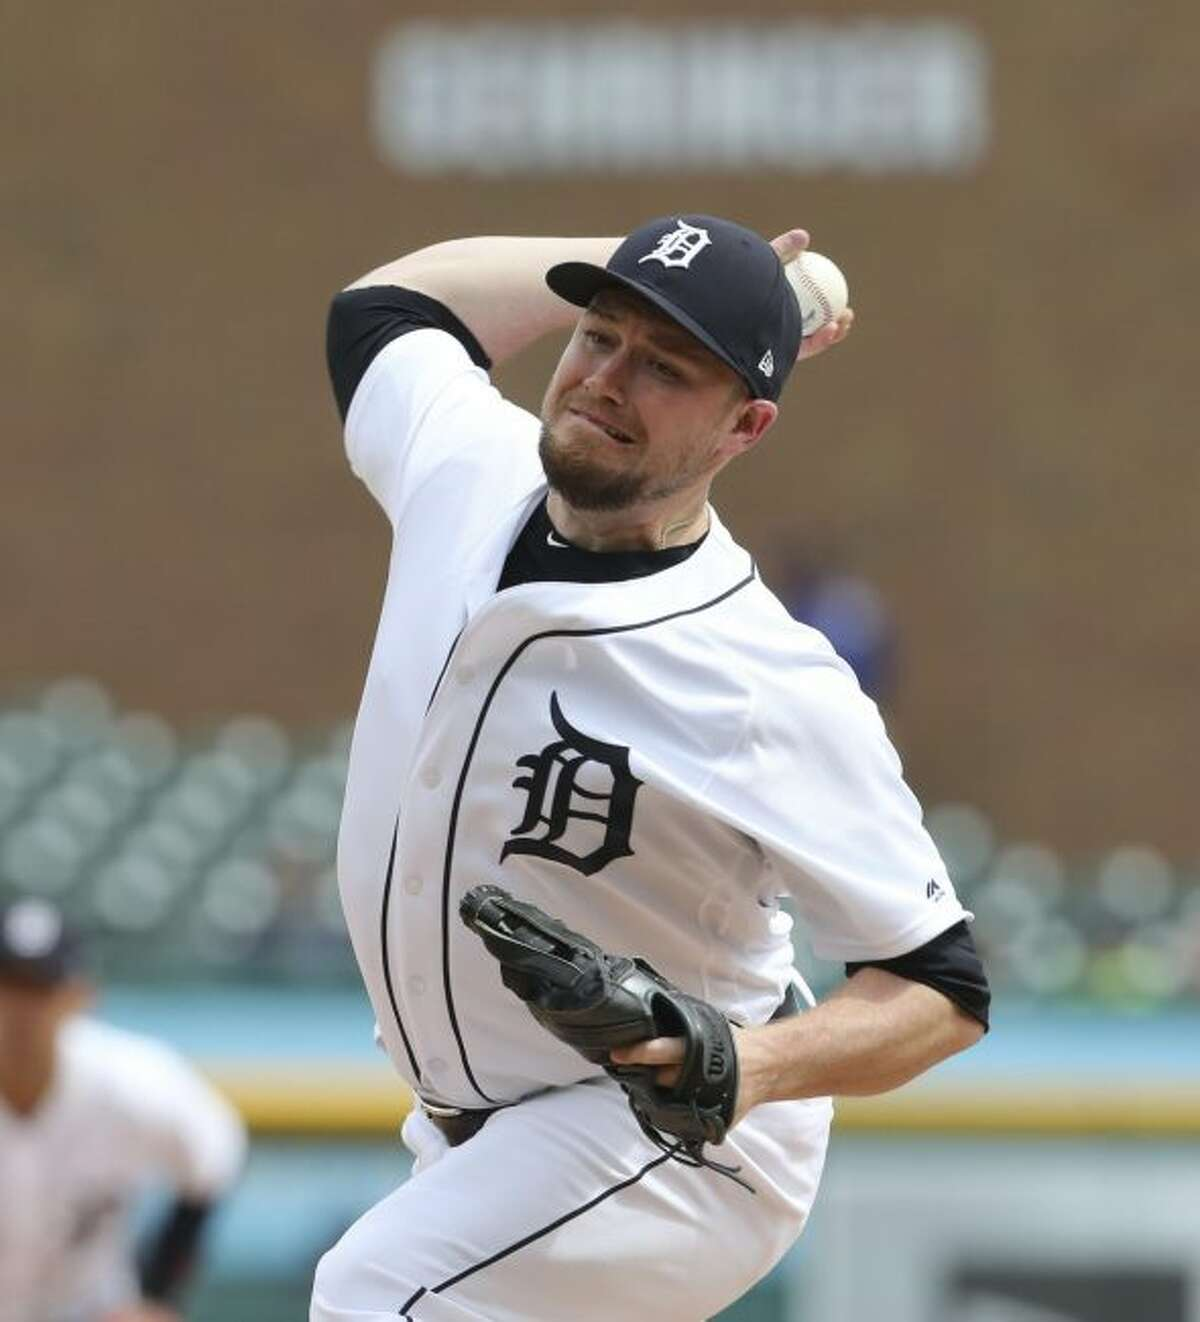 Detroit Tigers relief pitcher Alex Wilson throws during the seventh inning of a baseball game against the Tampa Bay Rays, Wednesday, May 2, 2018, in Detroit. (AP Photo/Carlos Osorio)